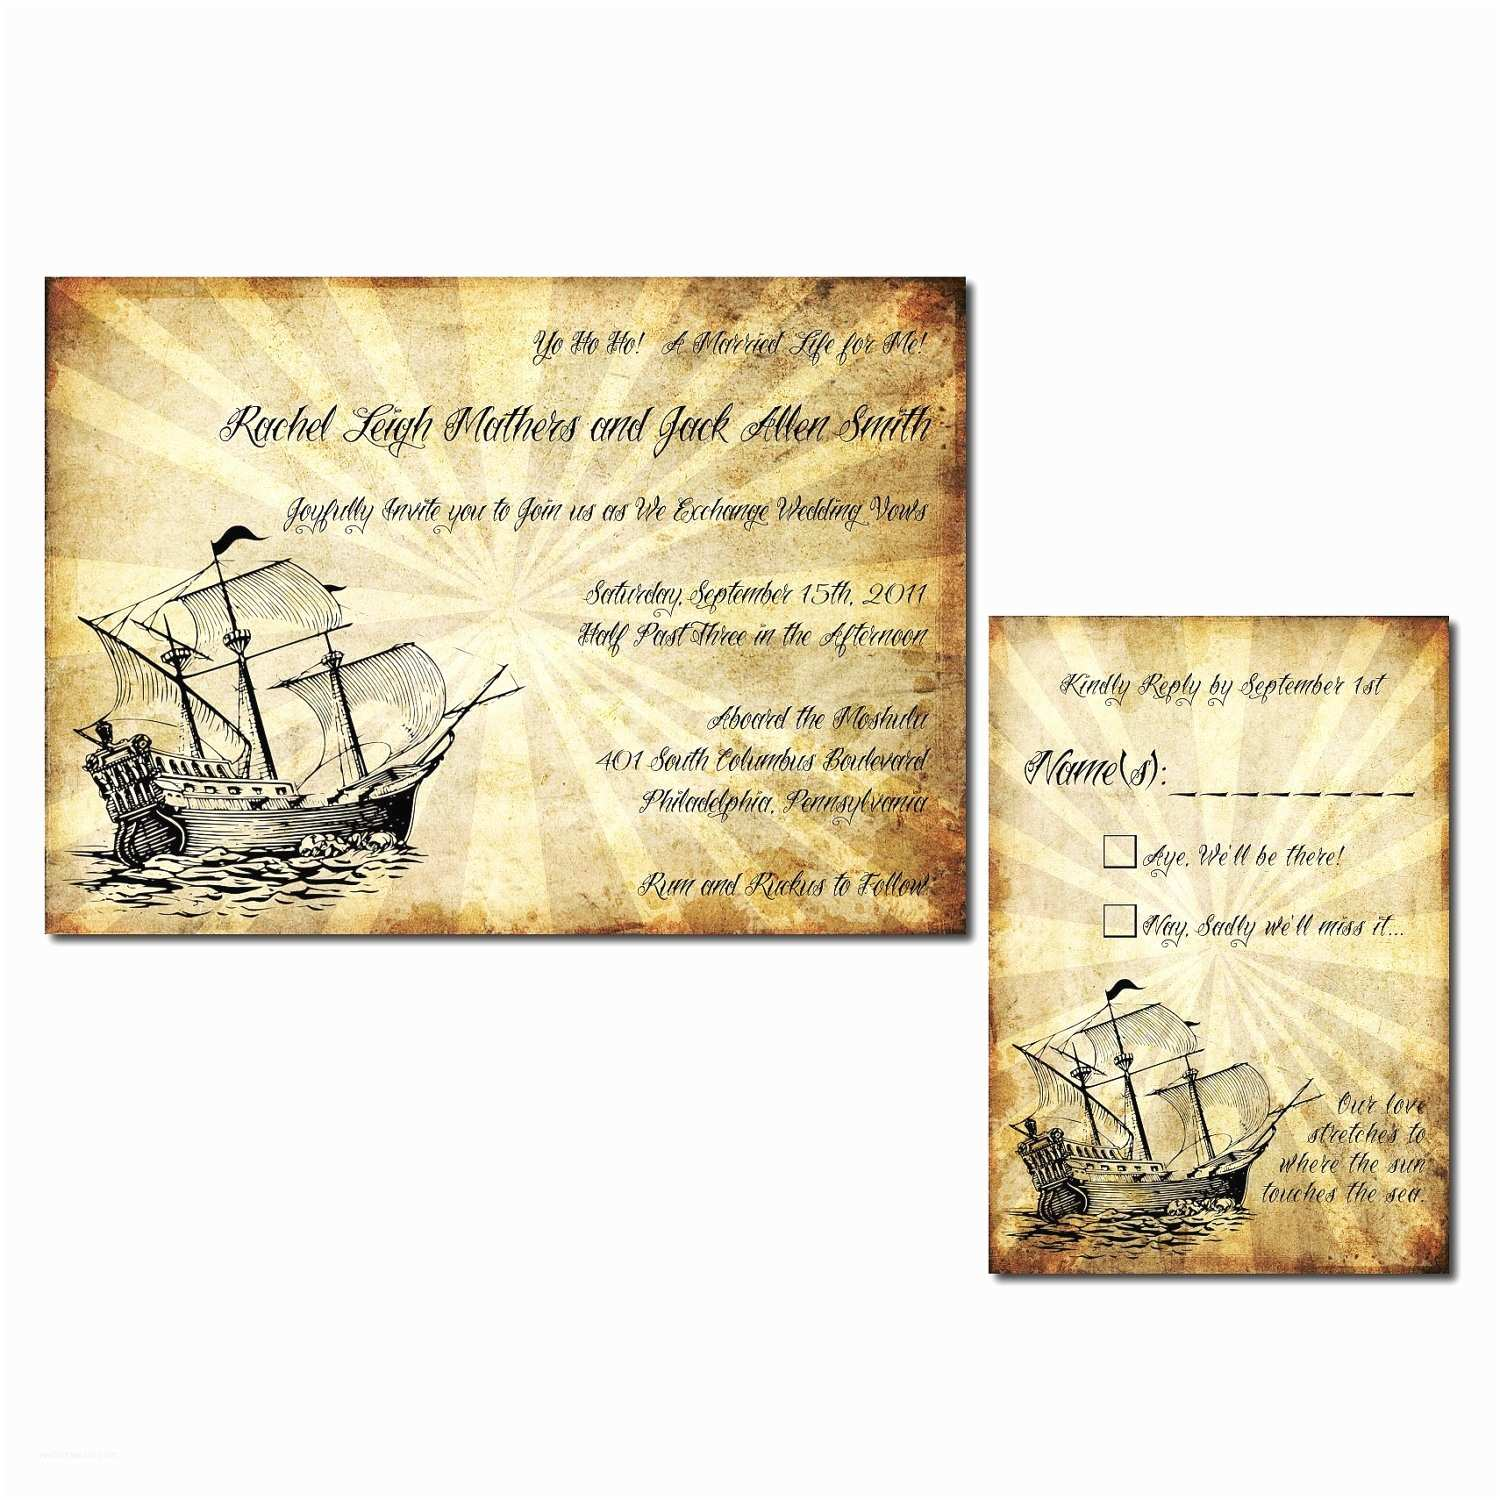 Yacht Wedding Invitation Wording 40 Unique Wedding Invitation Designs Dzineblog